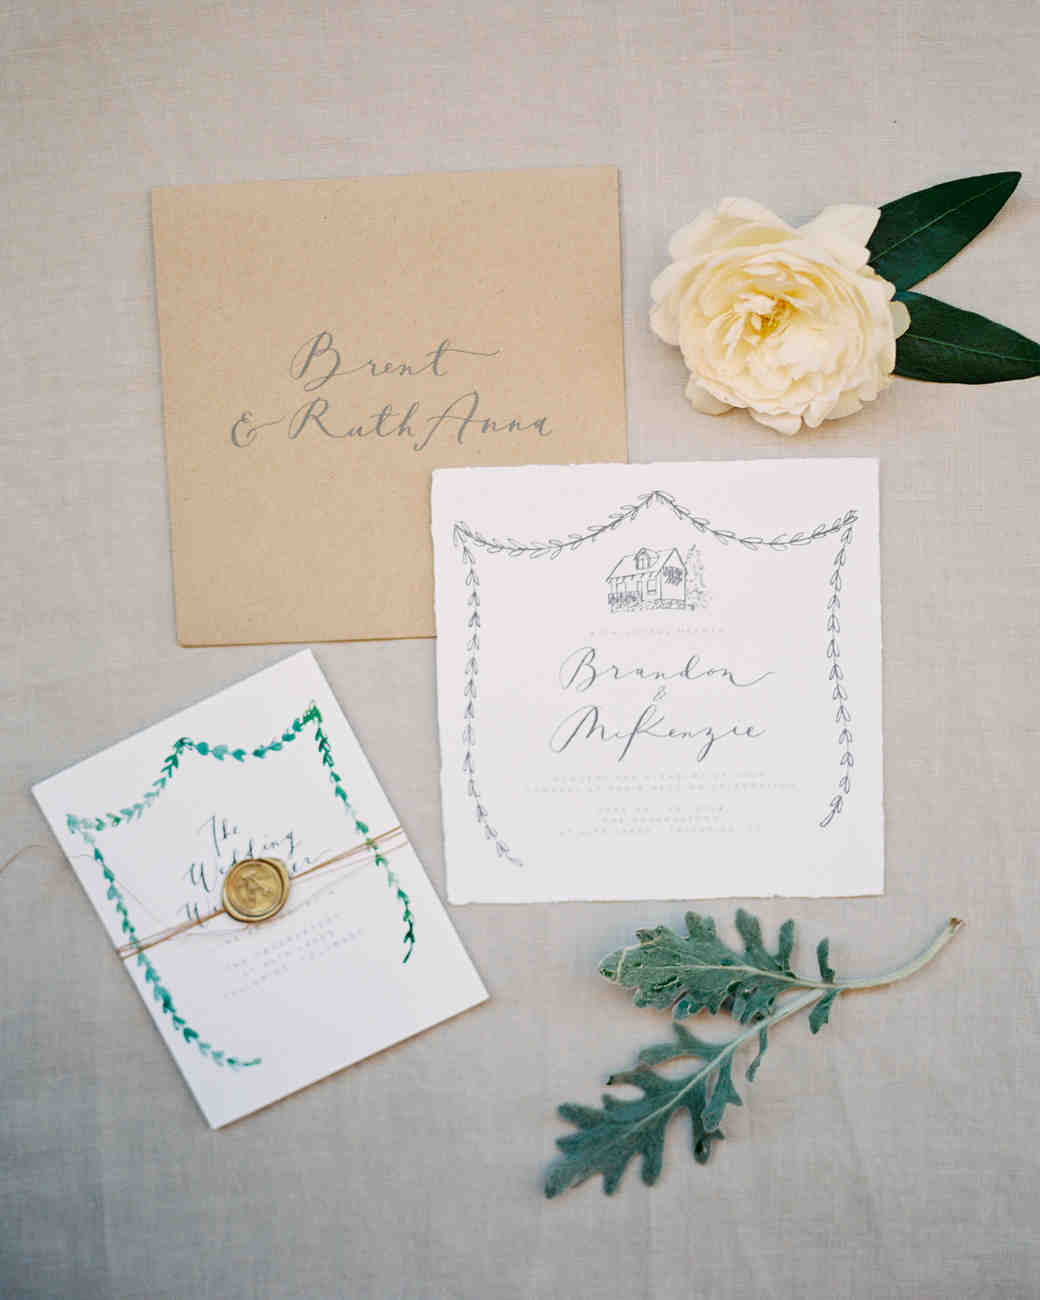 mckenzie-brandon-wedding-stationery-98-s112364-1115.jpg